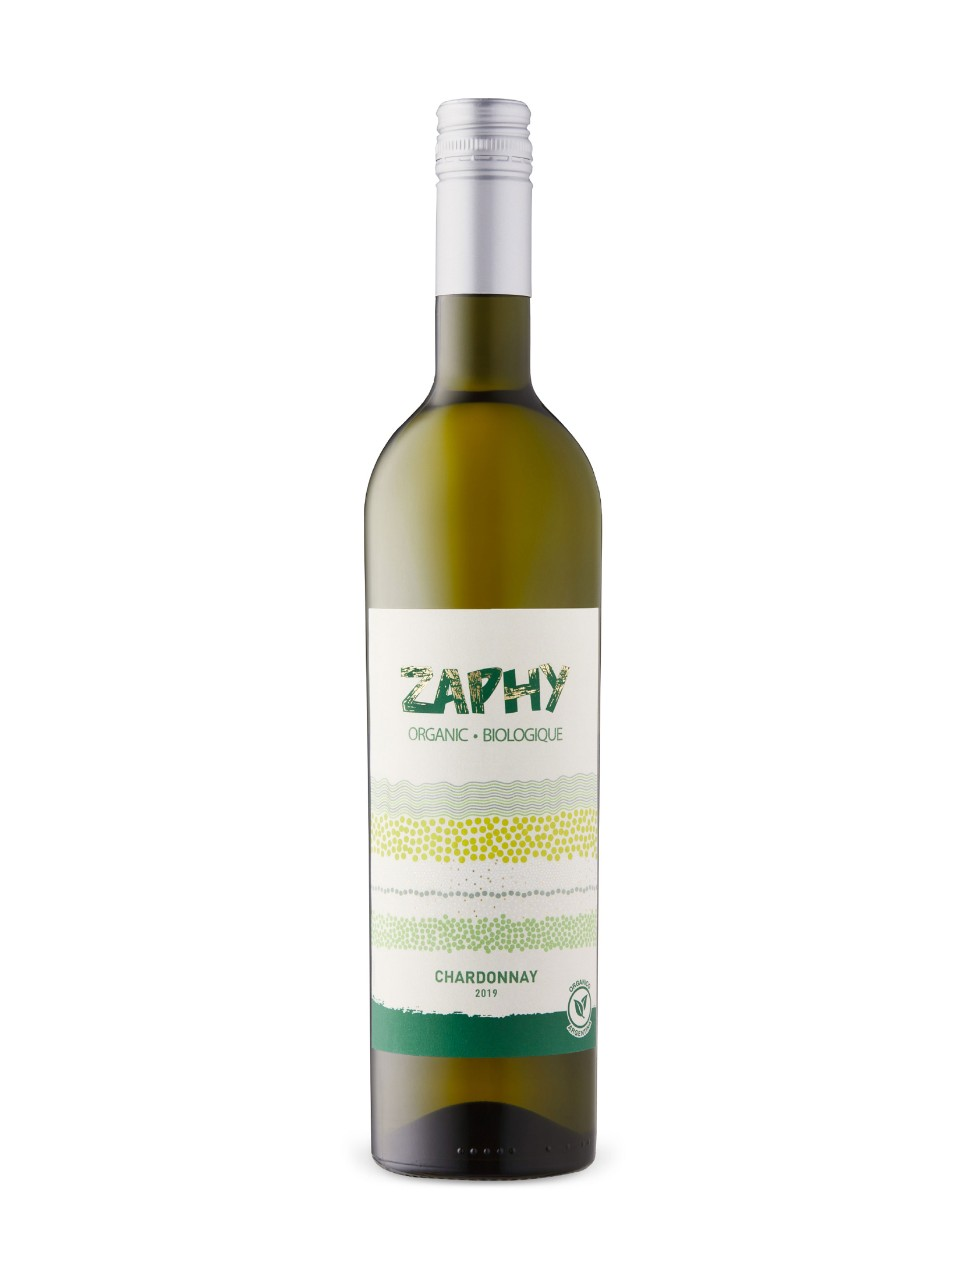 Zaphy Organic Chardonnay from LCBO